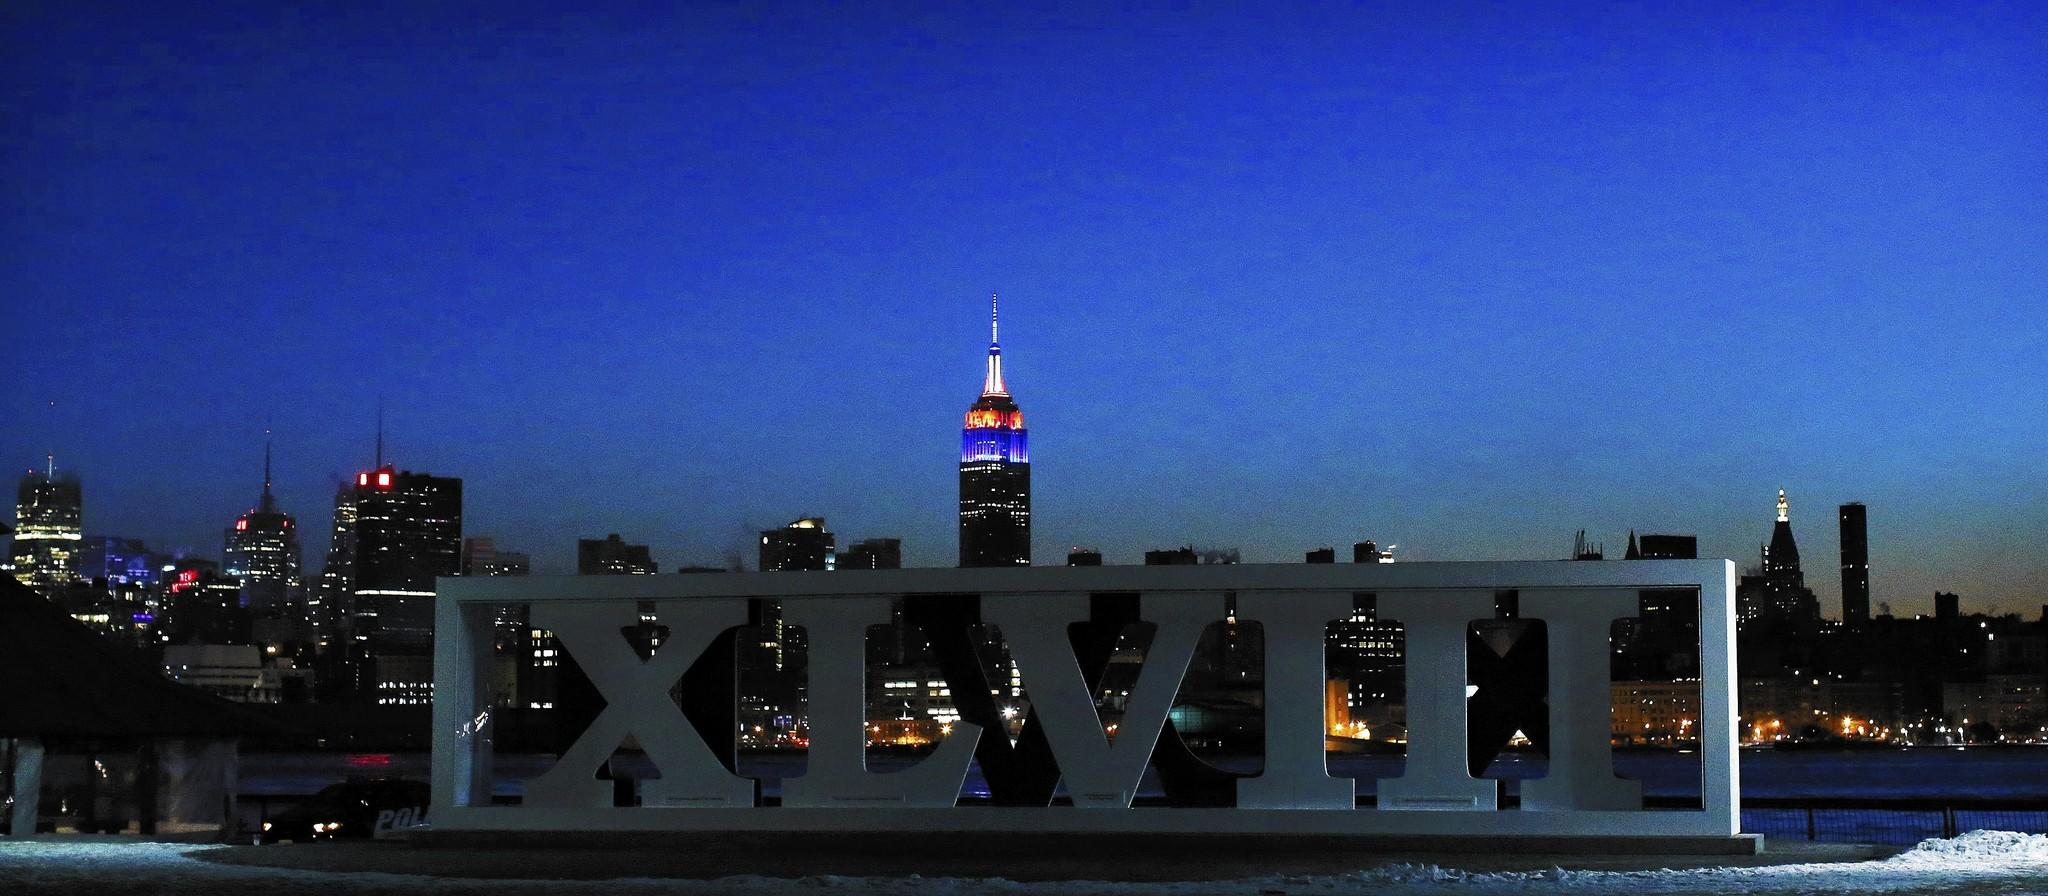 The New York skyline and the Empire State Building are seen in the distance as roman numerals for NFL Super Bowl XLVIII football game are displayed in Hoboken, New Jersey